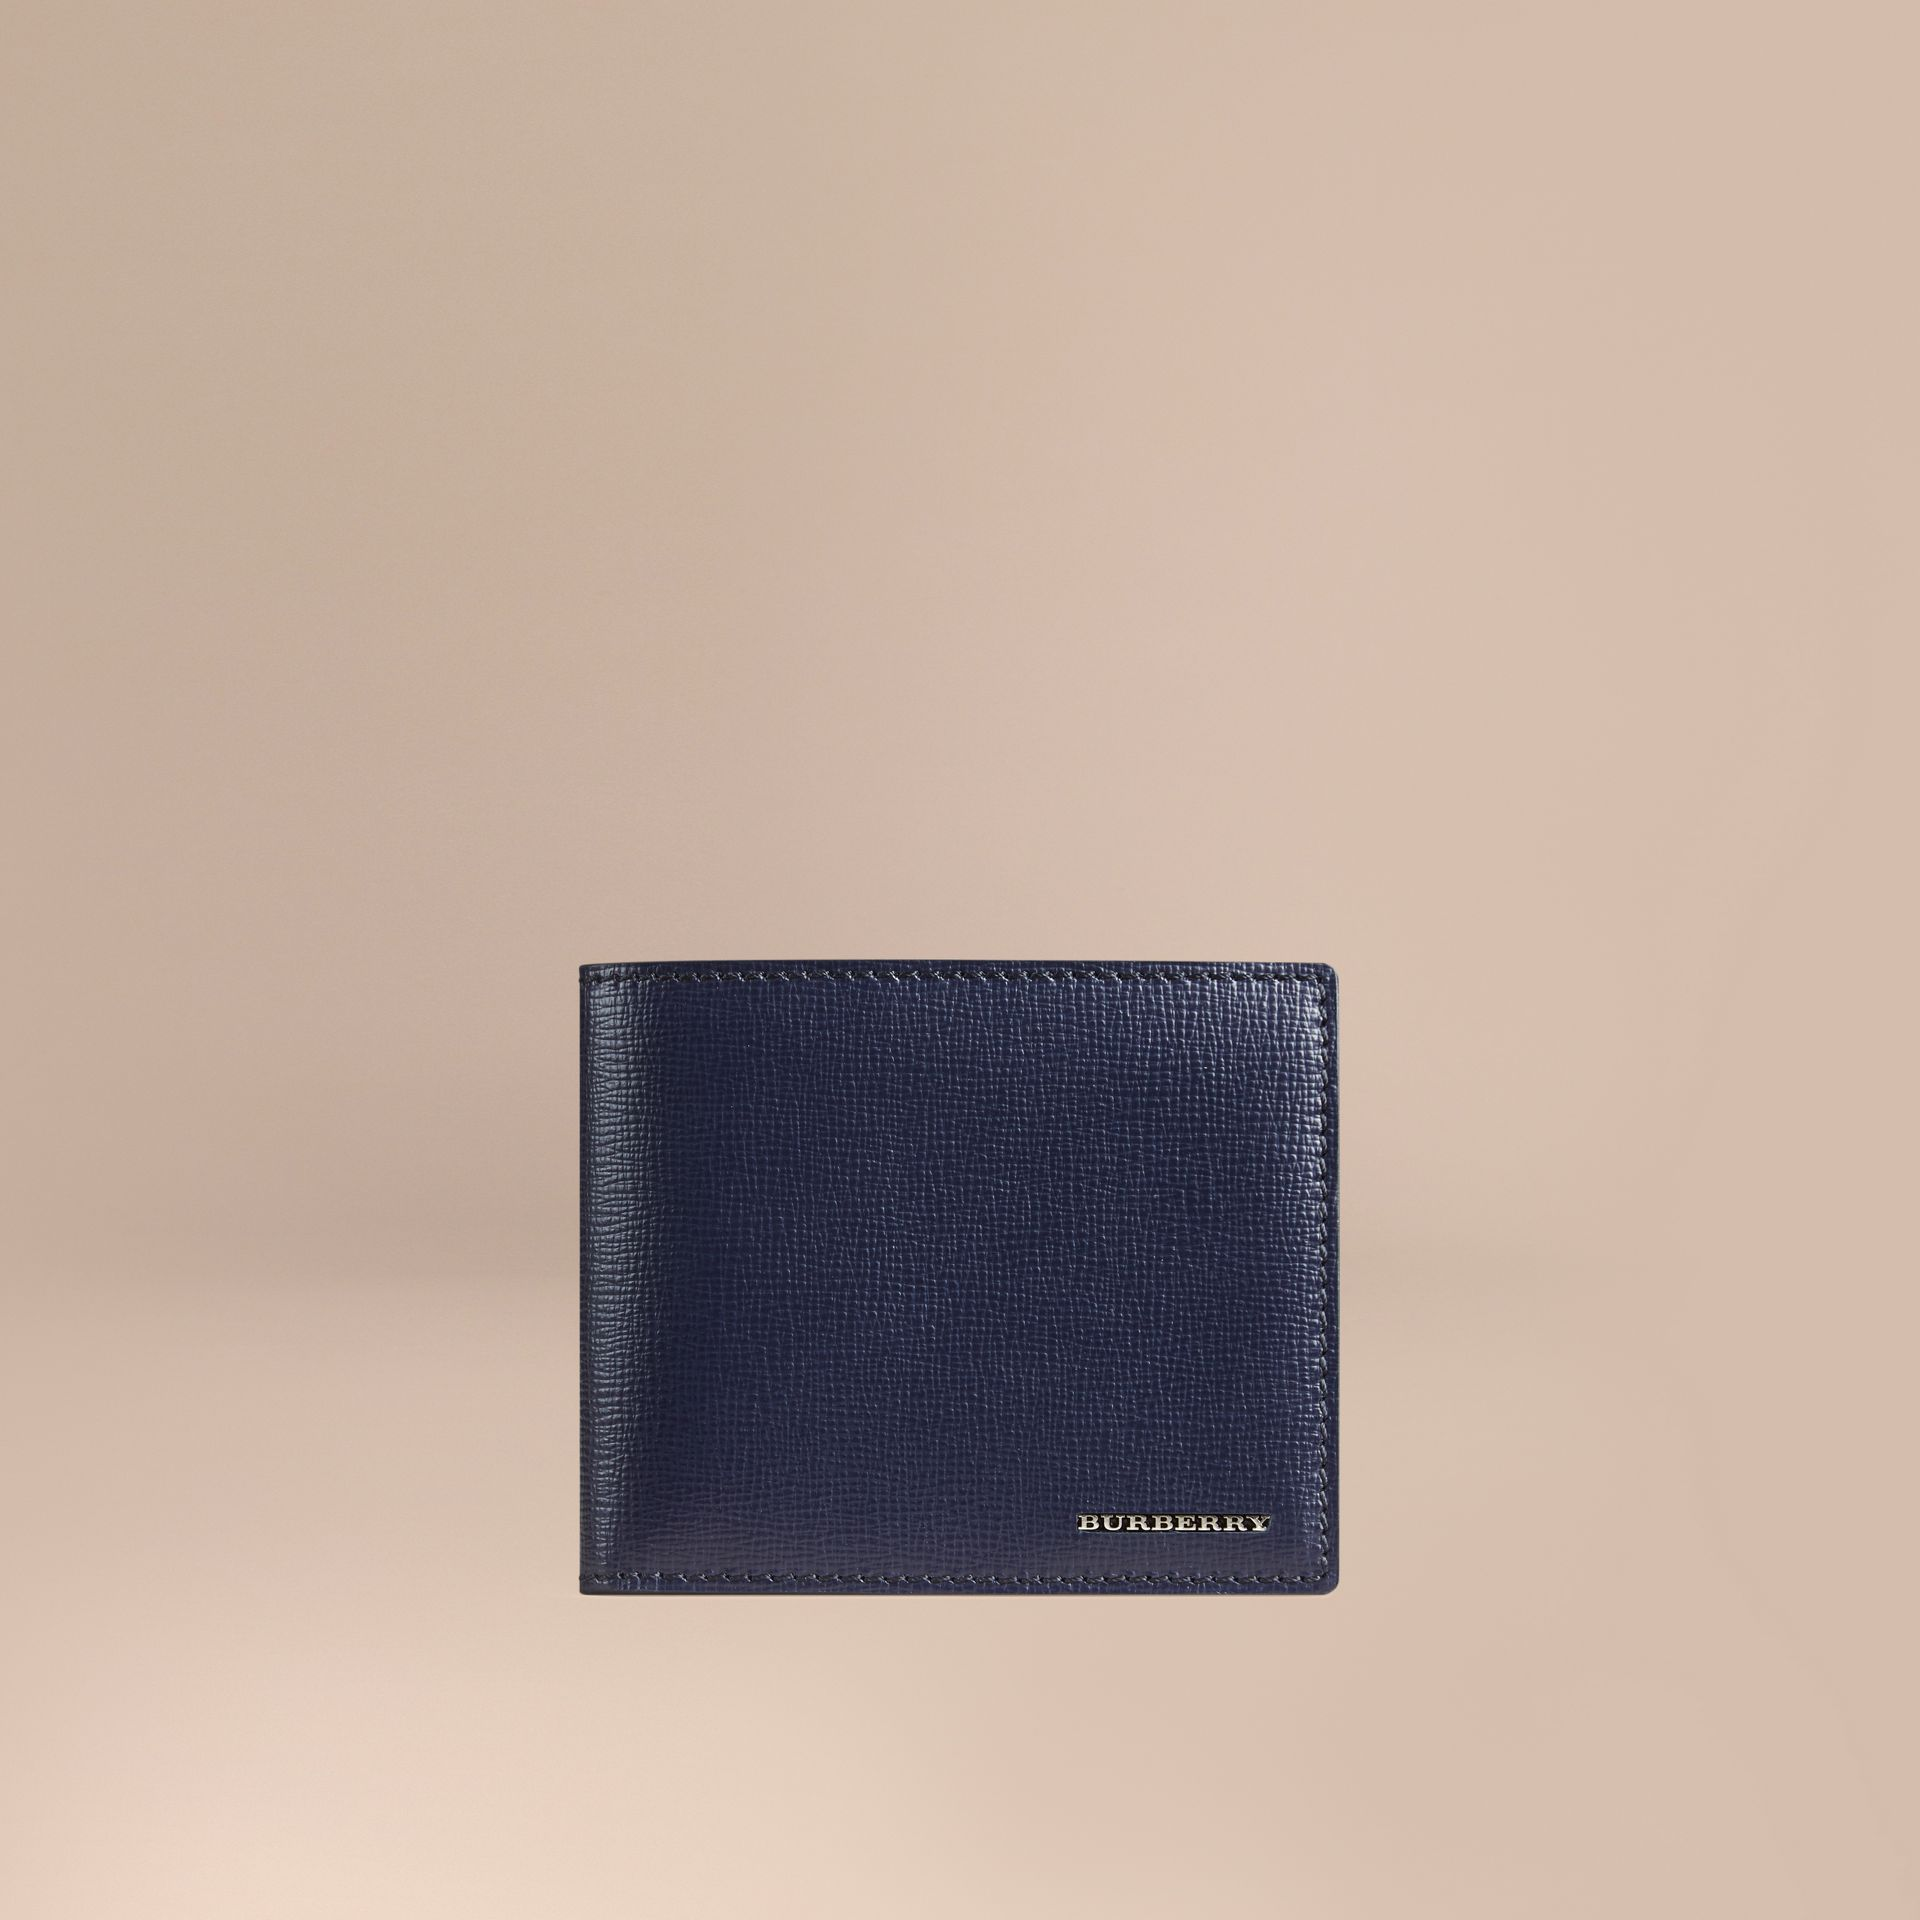 London Leather ID Wallet in Dark Navy - Men | Burberry - gallery image 1